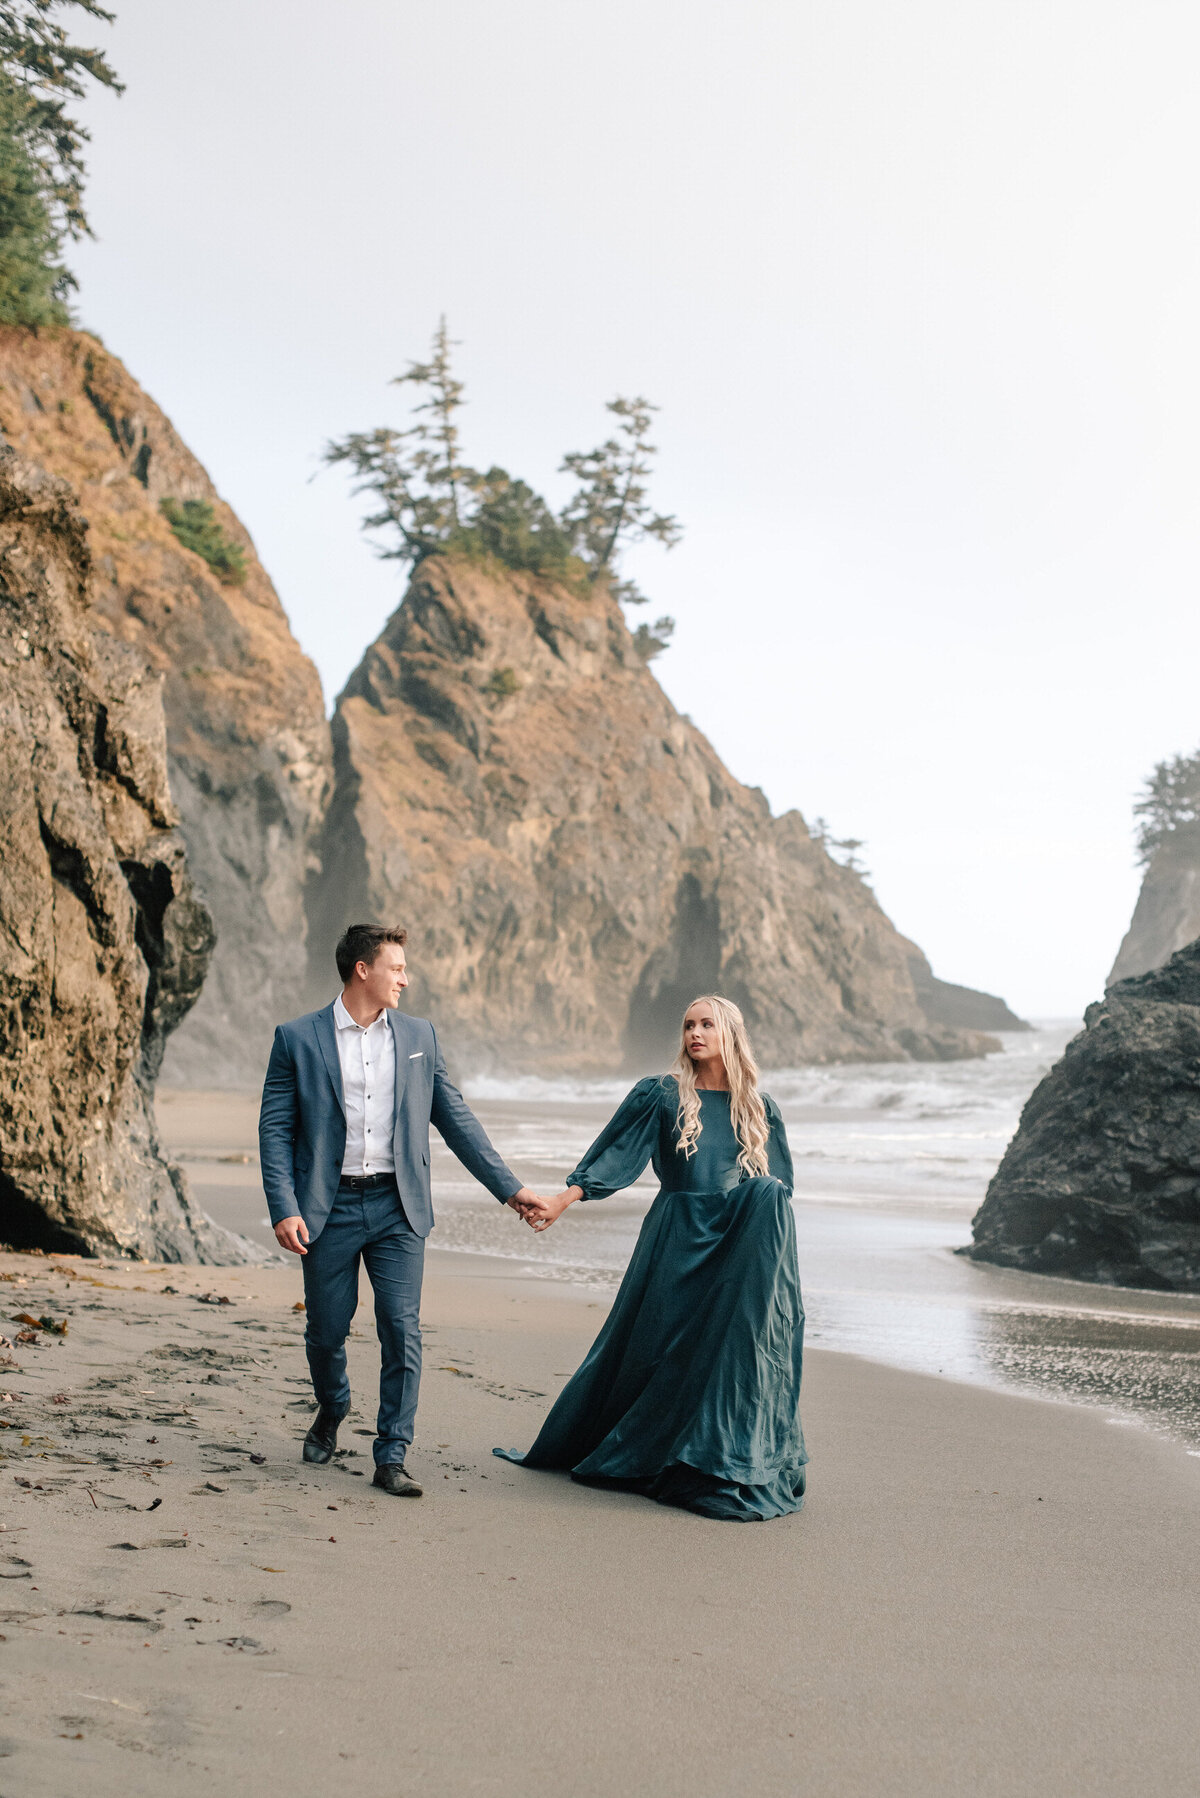 Couple walking on the beach in Brookings, Oregon featuring a green Emily Riggs dress